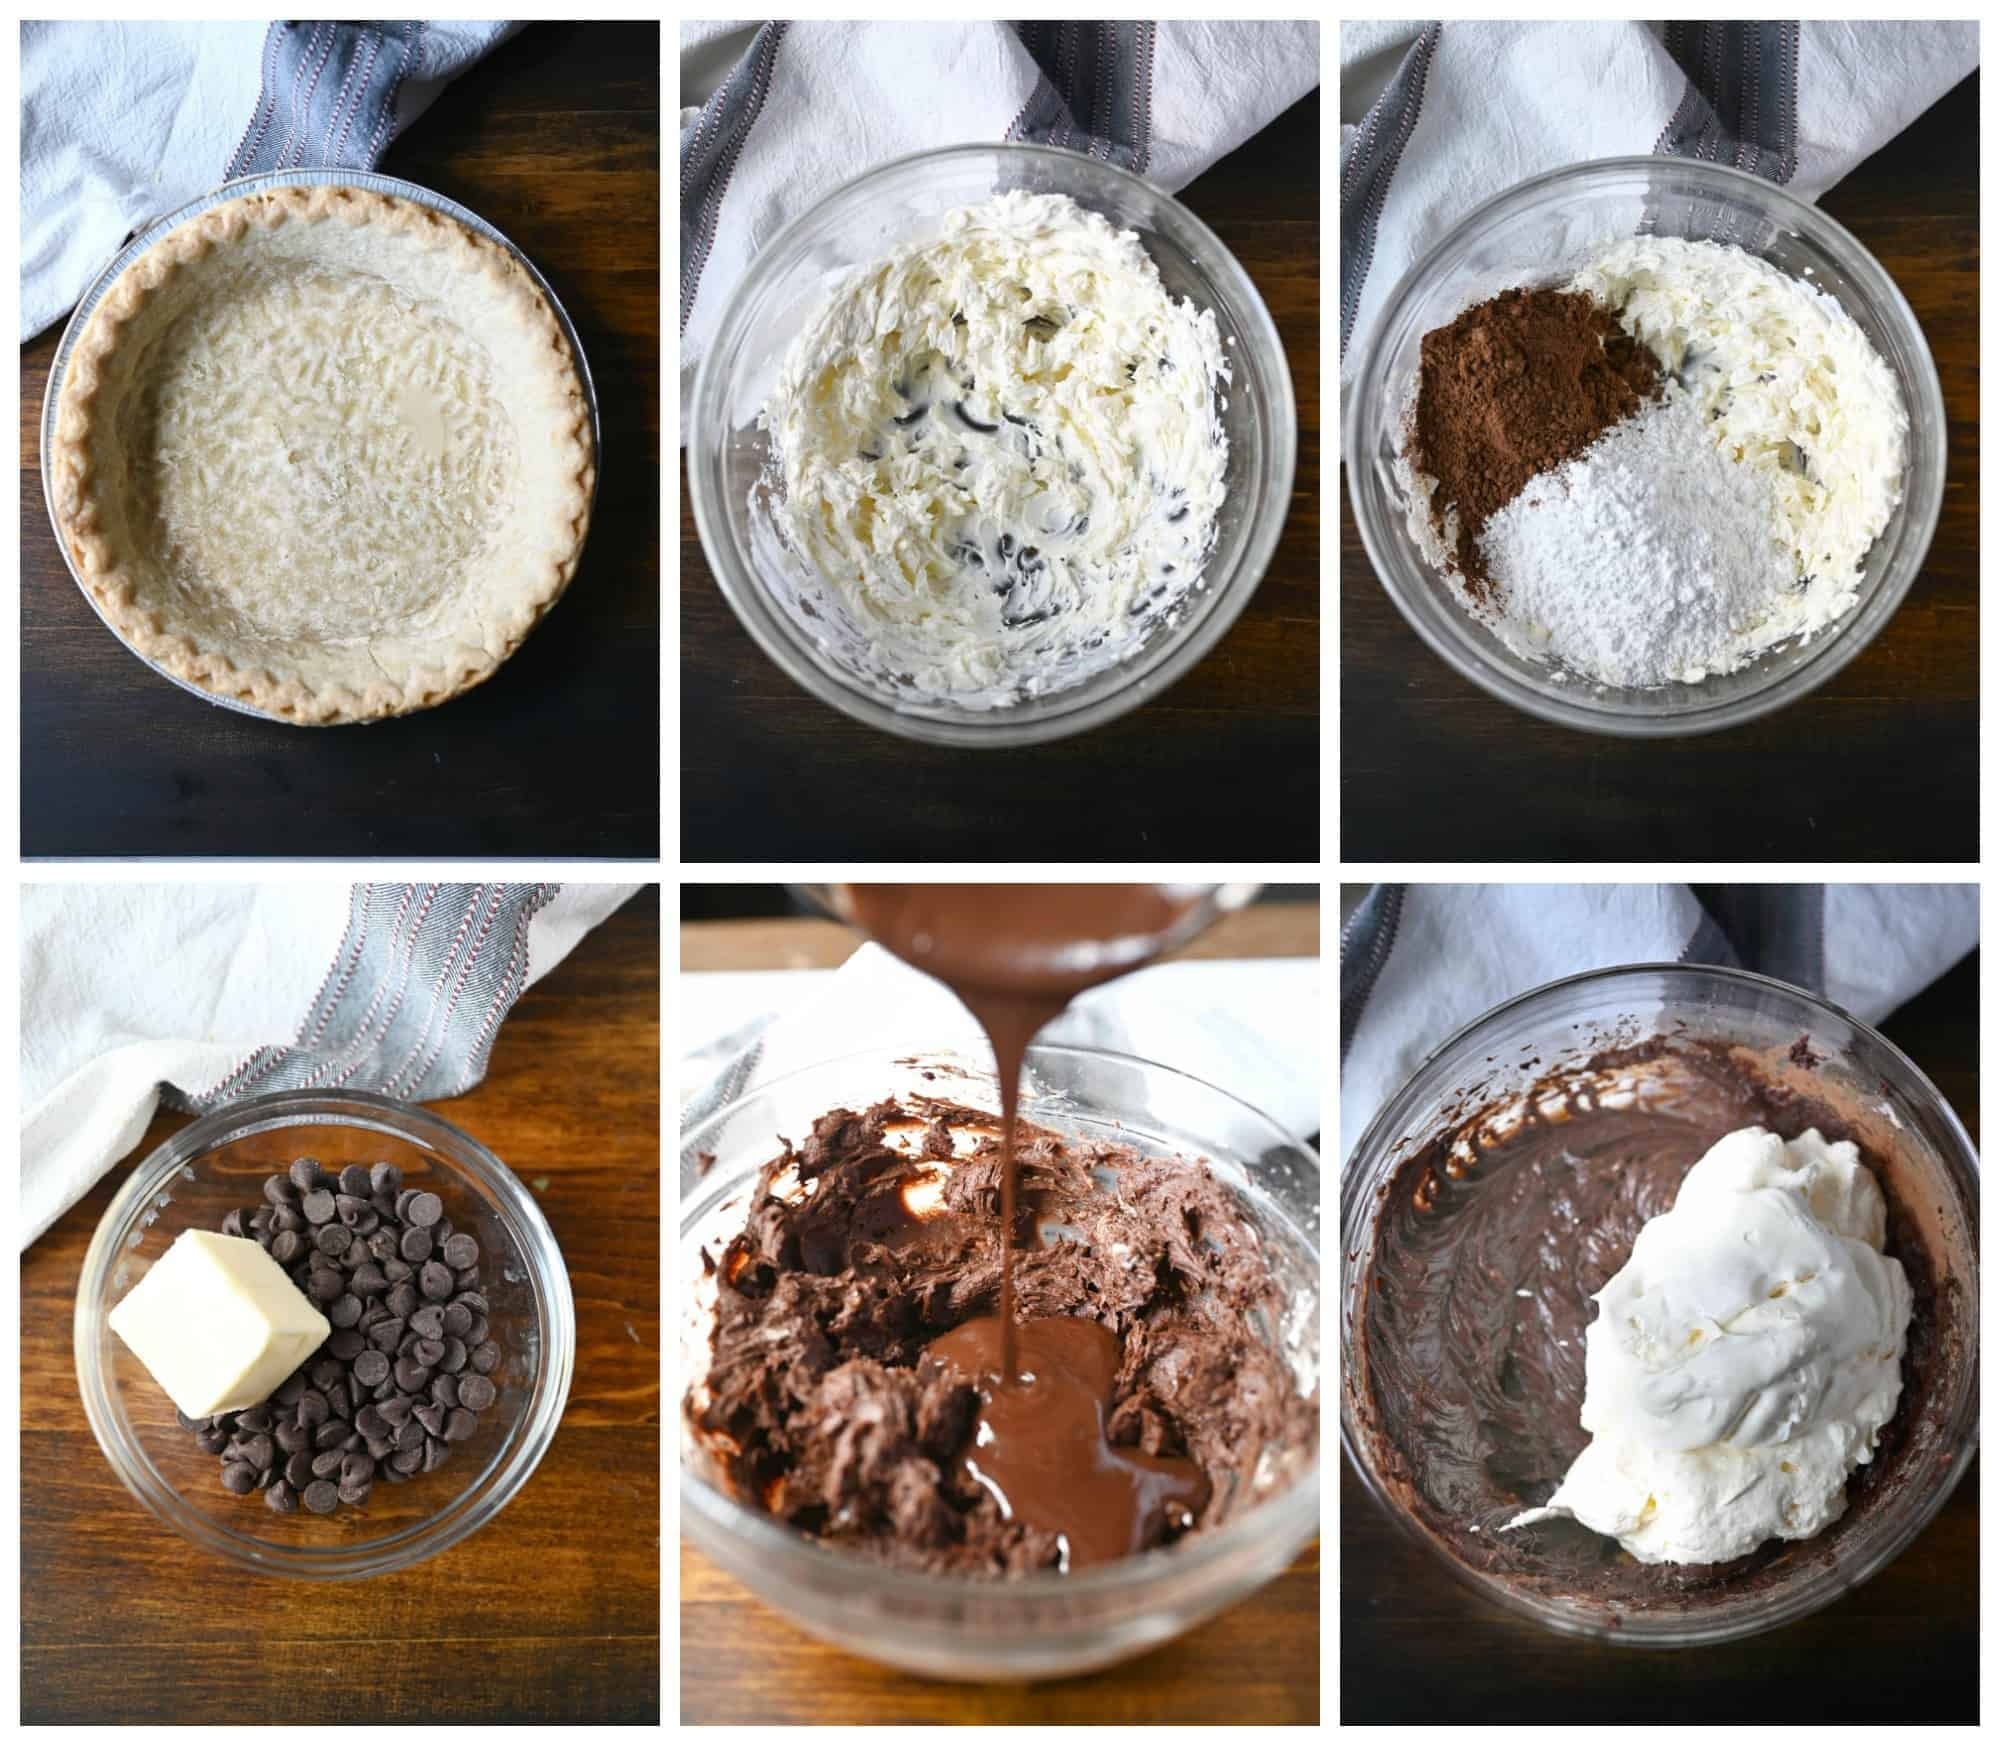 Six process shots. First one, baked pie crust. Second one, softened cream cheese mixed in a bowl using an electric mixer. Third, cream cheese, cocoa powder and powdered sugar ready to mix together. Fourth, chocolate chips and butter in a small bowl. Fifth one, melted chocolate being poured into previously mixed ingredients. Sixth one, whipped cream on top of mixed ingredients getting ready to be folded in together.